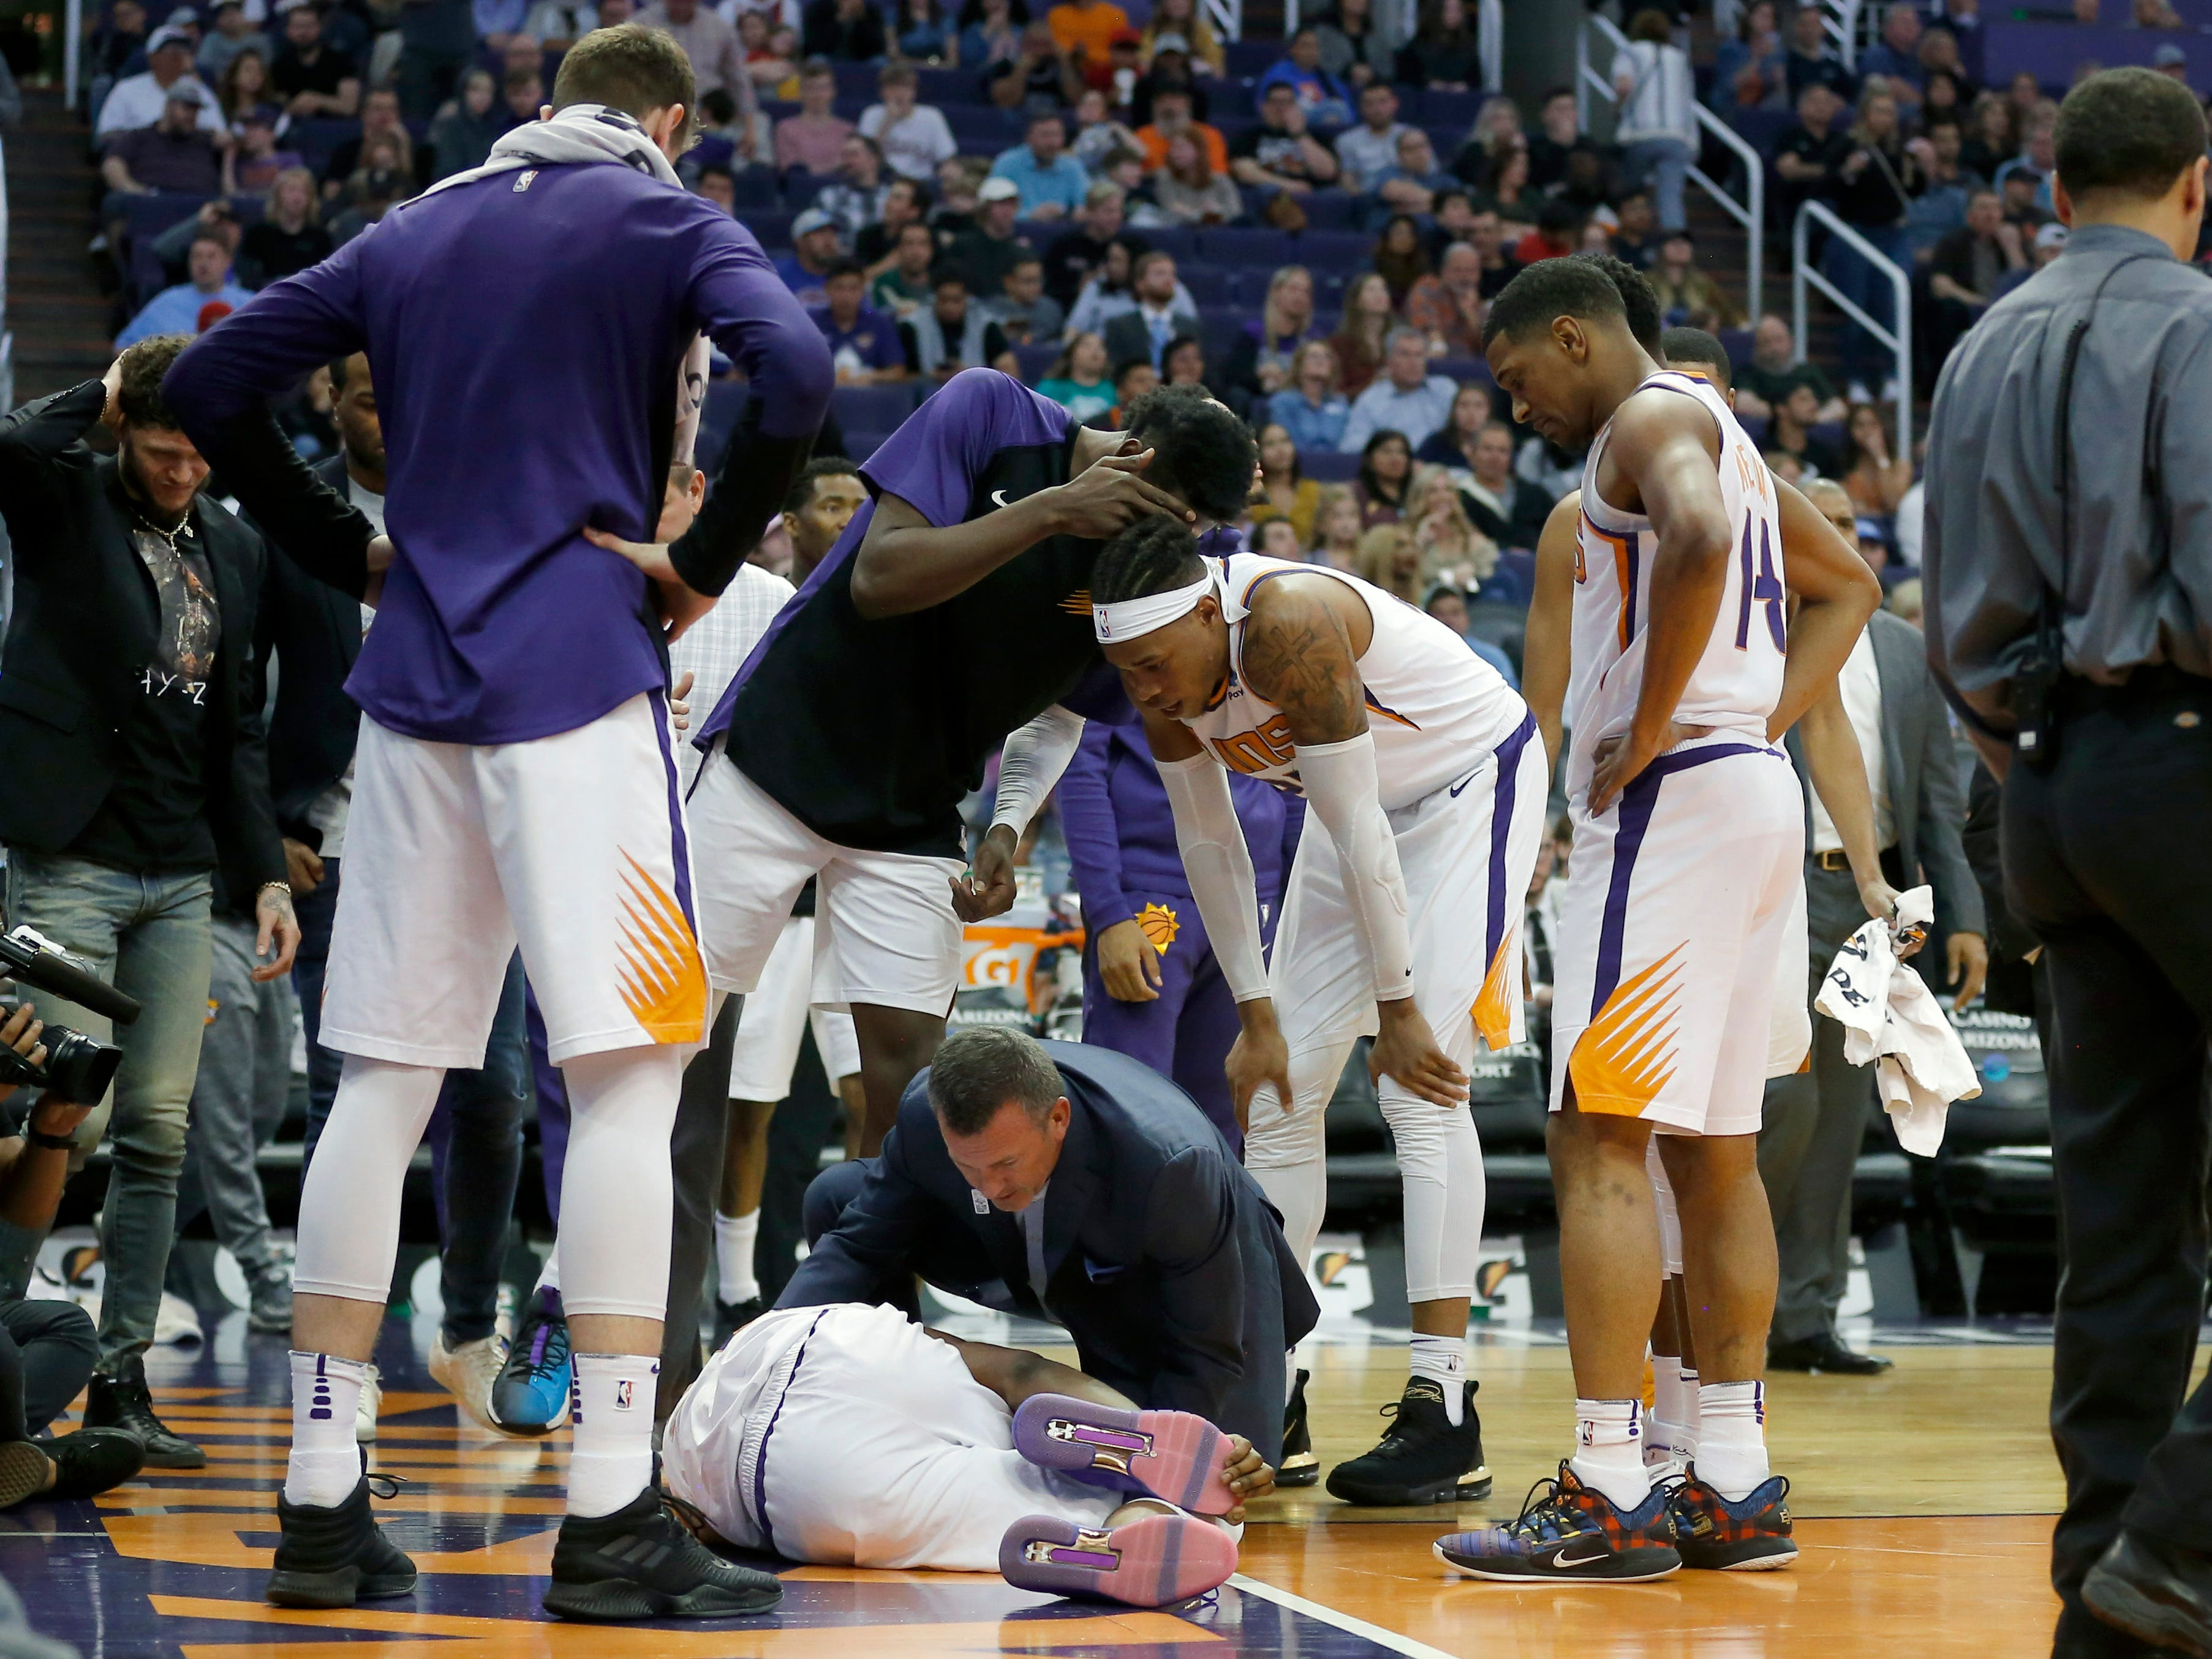 Mar 21, 2019; Phoenix, AZ, USA; Phoenix Suns forward Josh Jackson (20) gets medical help after hitting the floor in the second half during an NBA basketball game against the Detroit Pistons at Talking Stick Resort Arena.